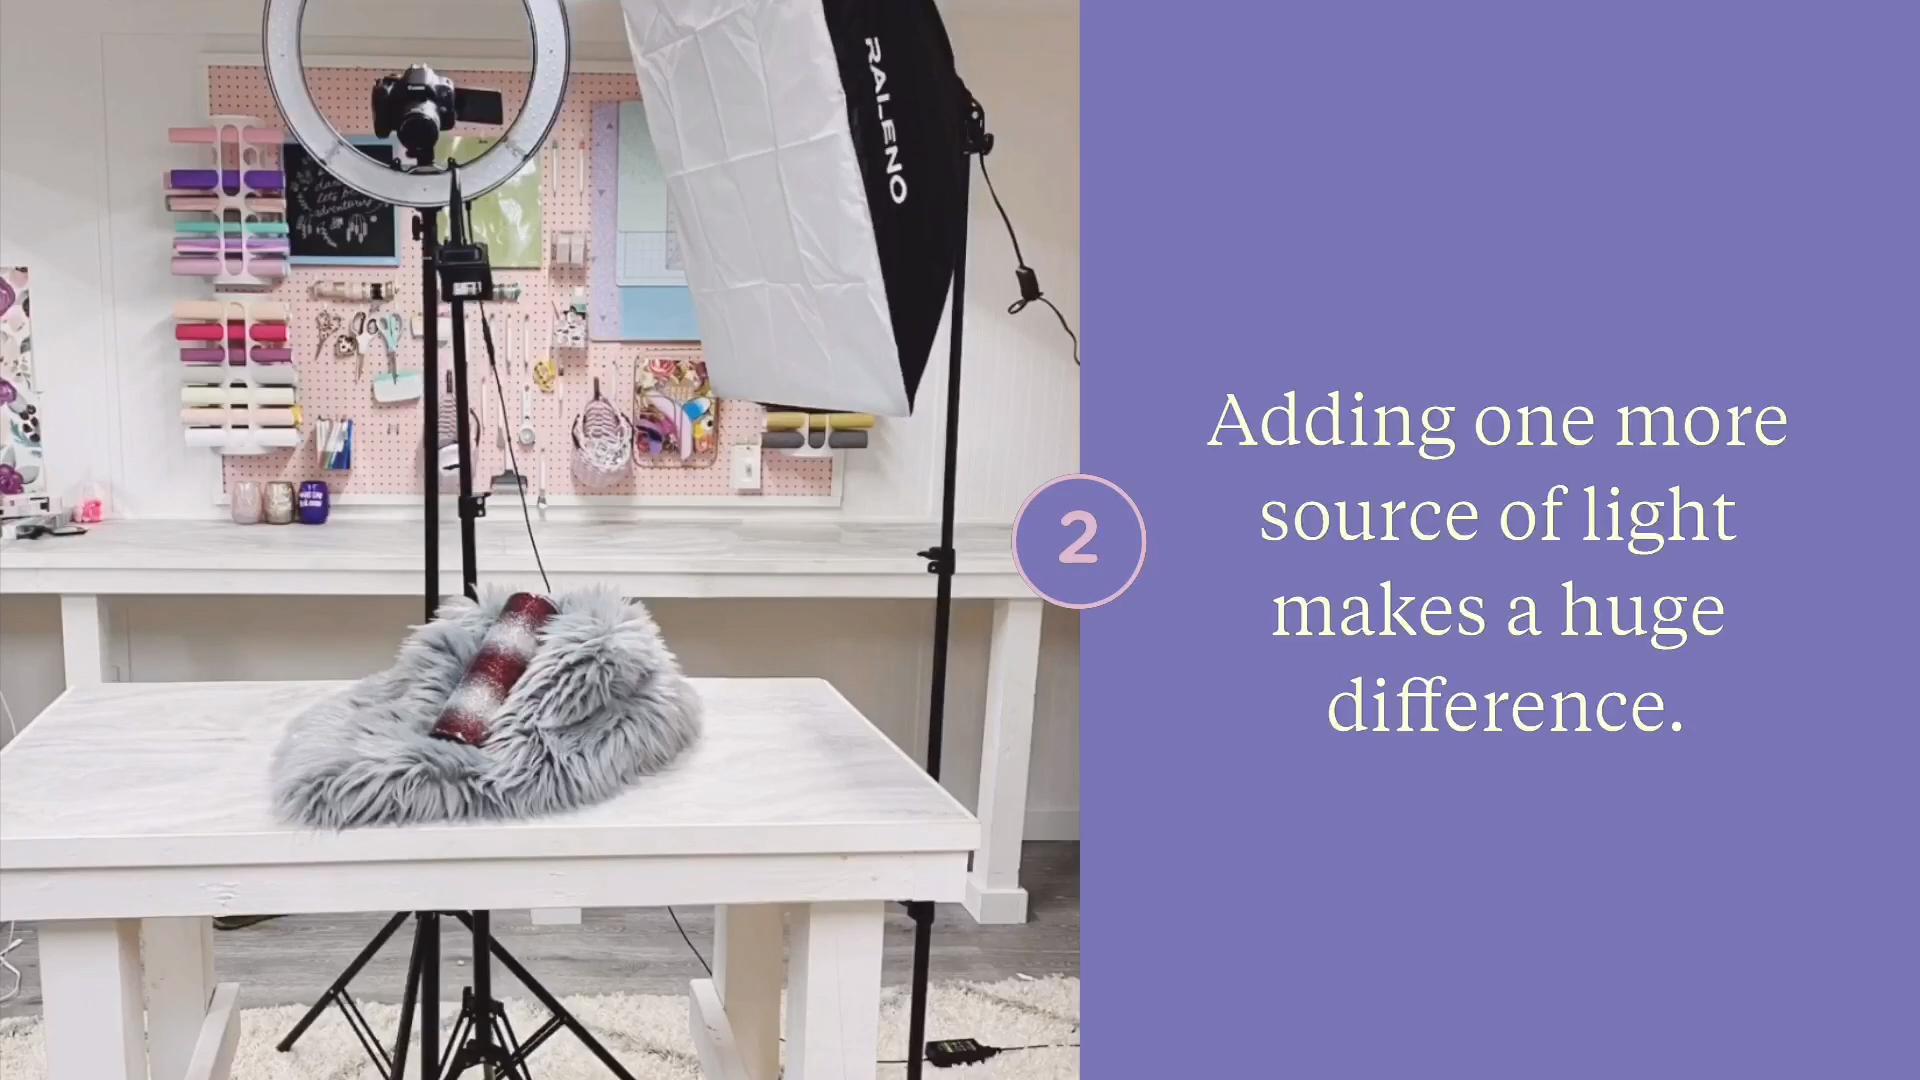 Use a ring light and softbox beginner lighting tips for photo and video